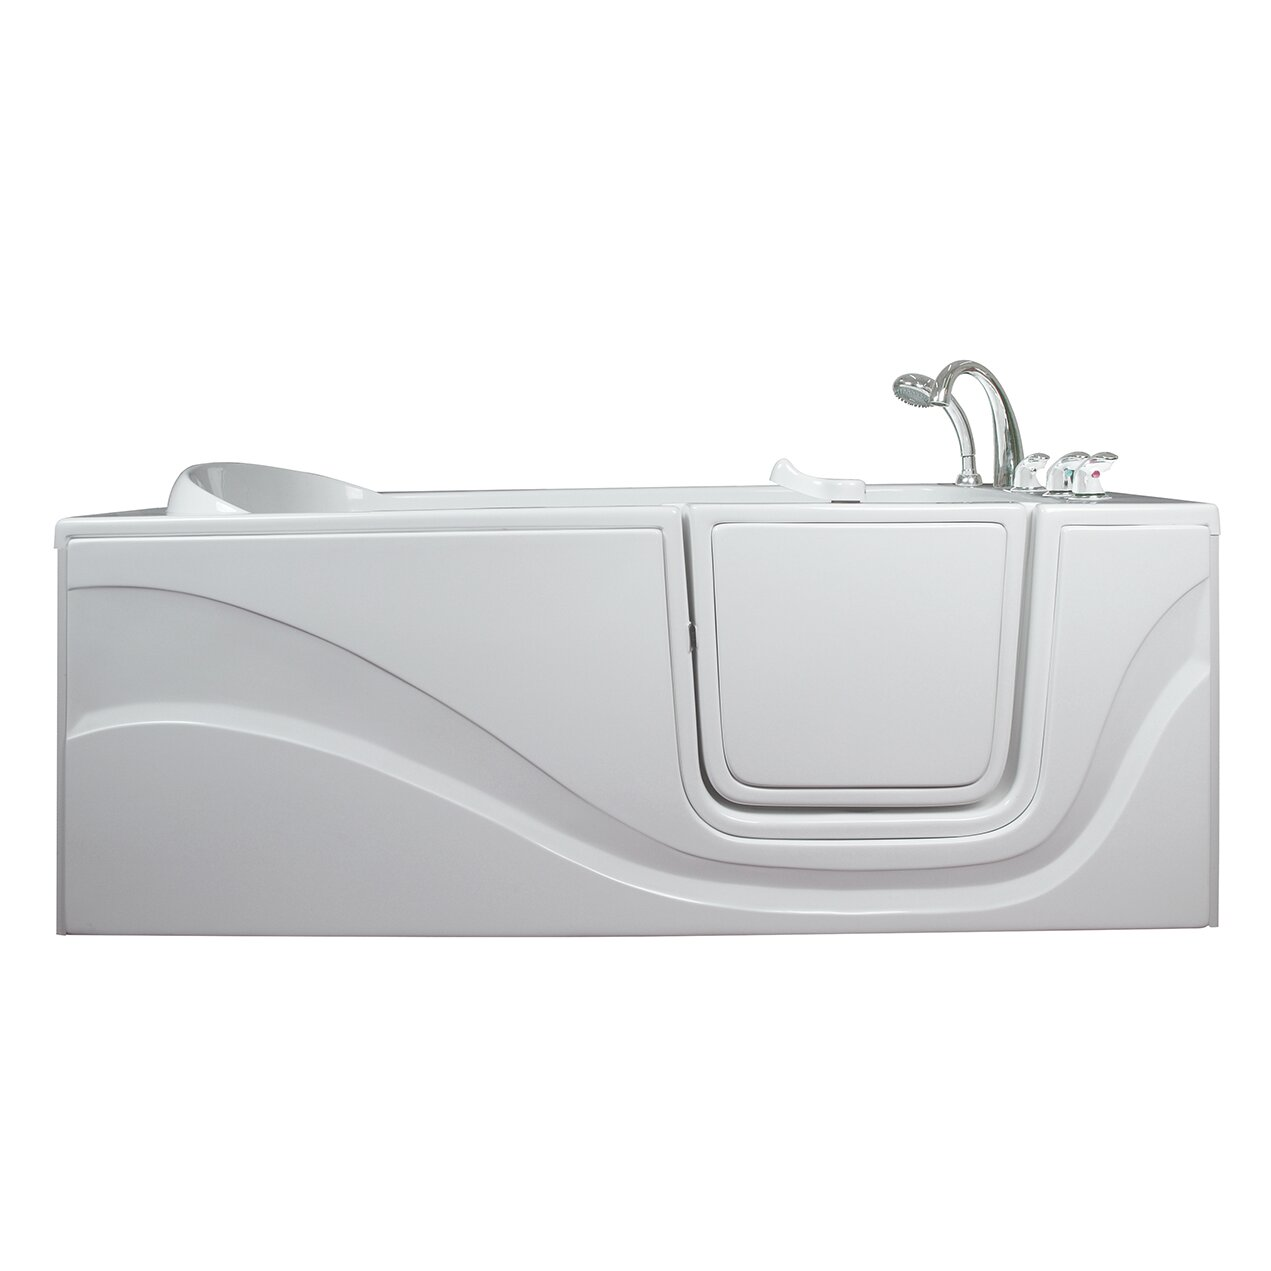 Famous Home Depot Bath Renovation Thin Total Bathroom Remodel Round Glass For Bathtub Shower Bathrooms Designs Pinterest Young Bath Showcase Peabody Supply YellowBathfitters Nj Walk In Shower Baths Prices   Rukinet